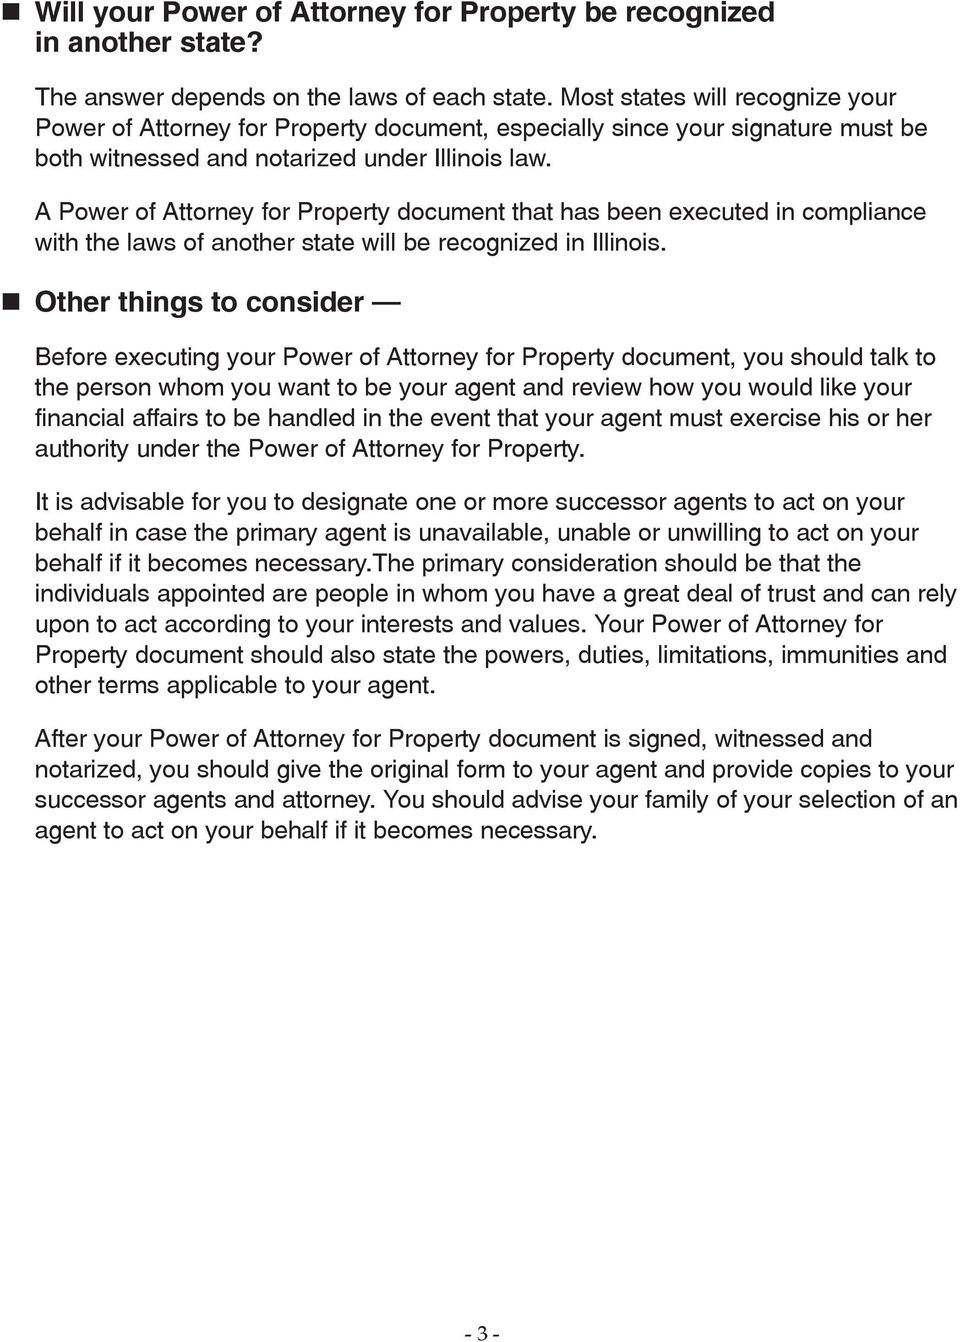 A Power of Attorney for Property document that has been executed in compliance with the laws of another state will be recognized in Illinois.